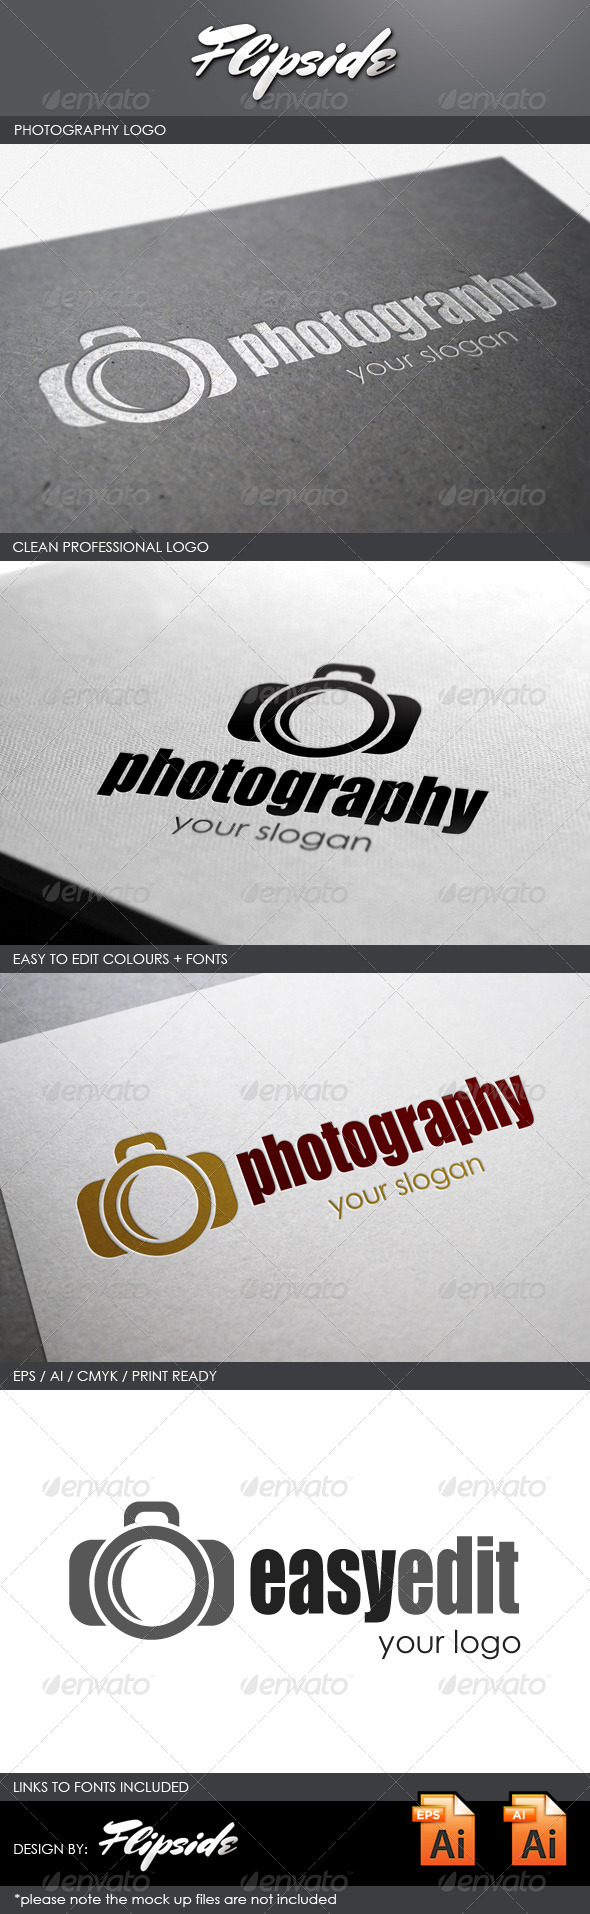 GraphicRiver Photography Studio Logo 4327320